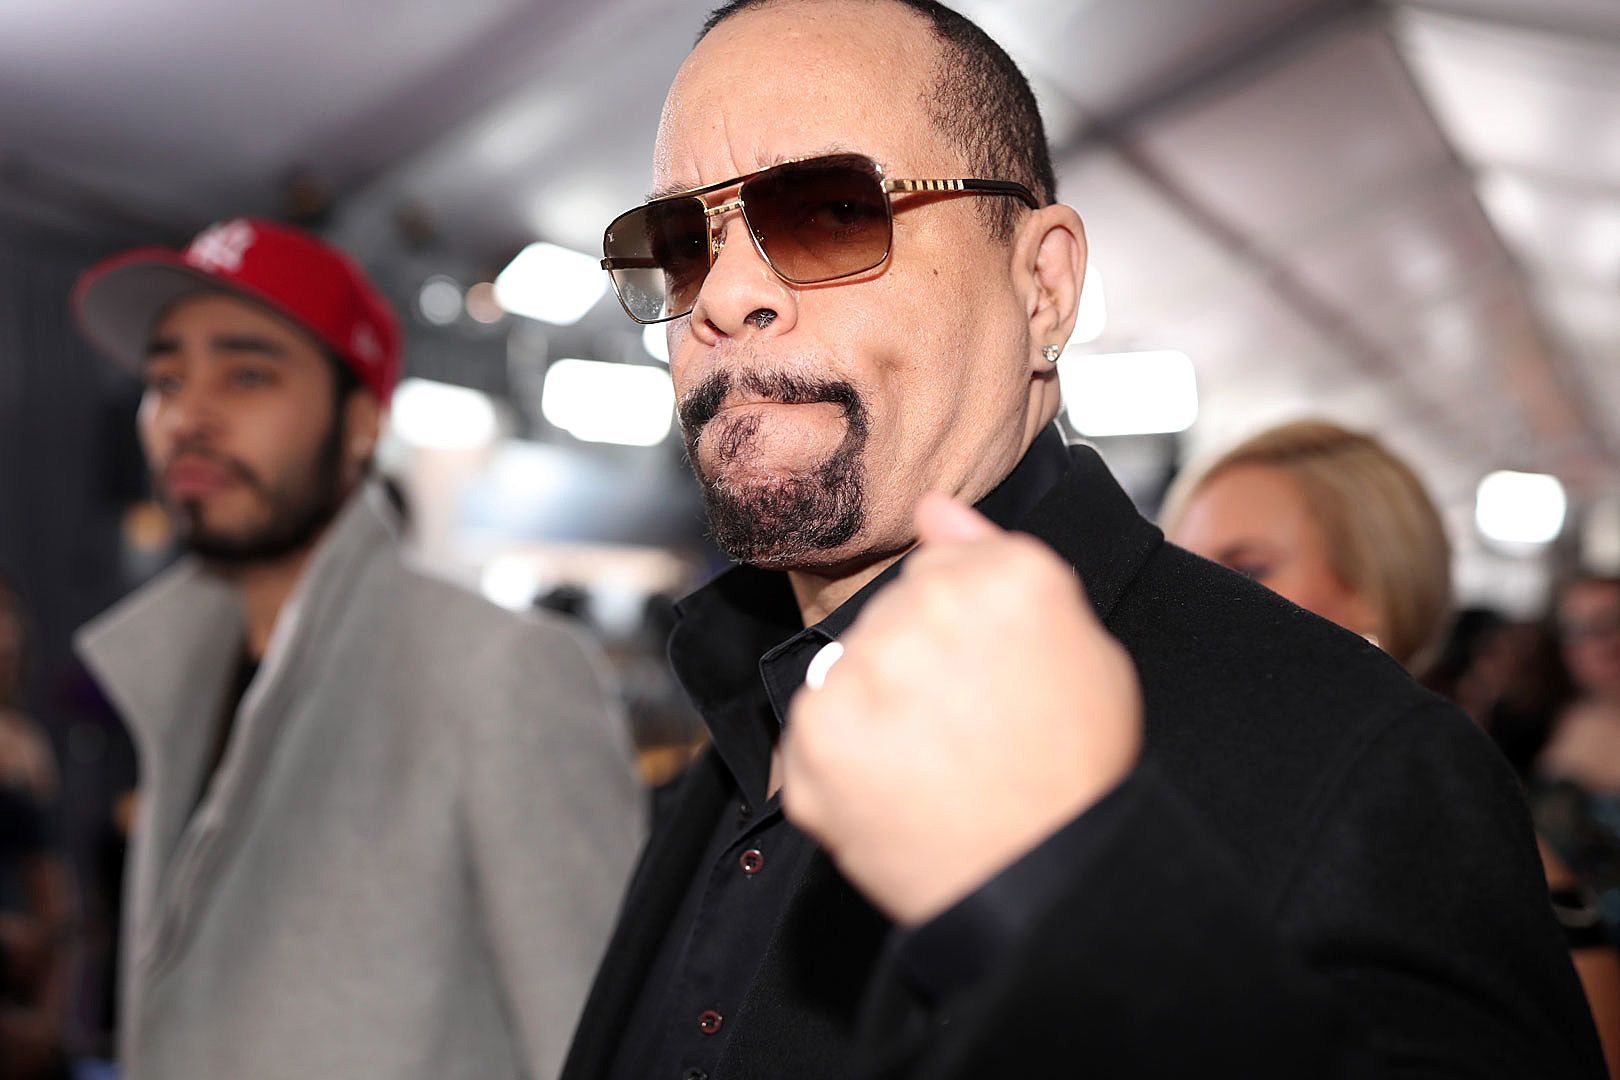 Report: Body Count's Ice-T Arrested for Evading Bridge Toll